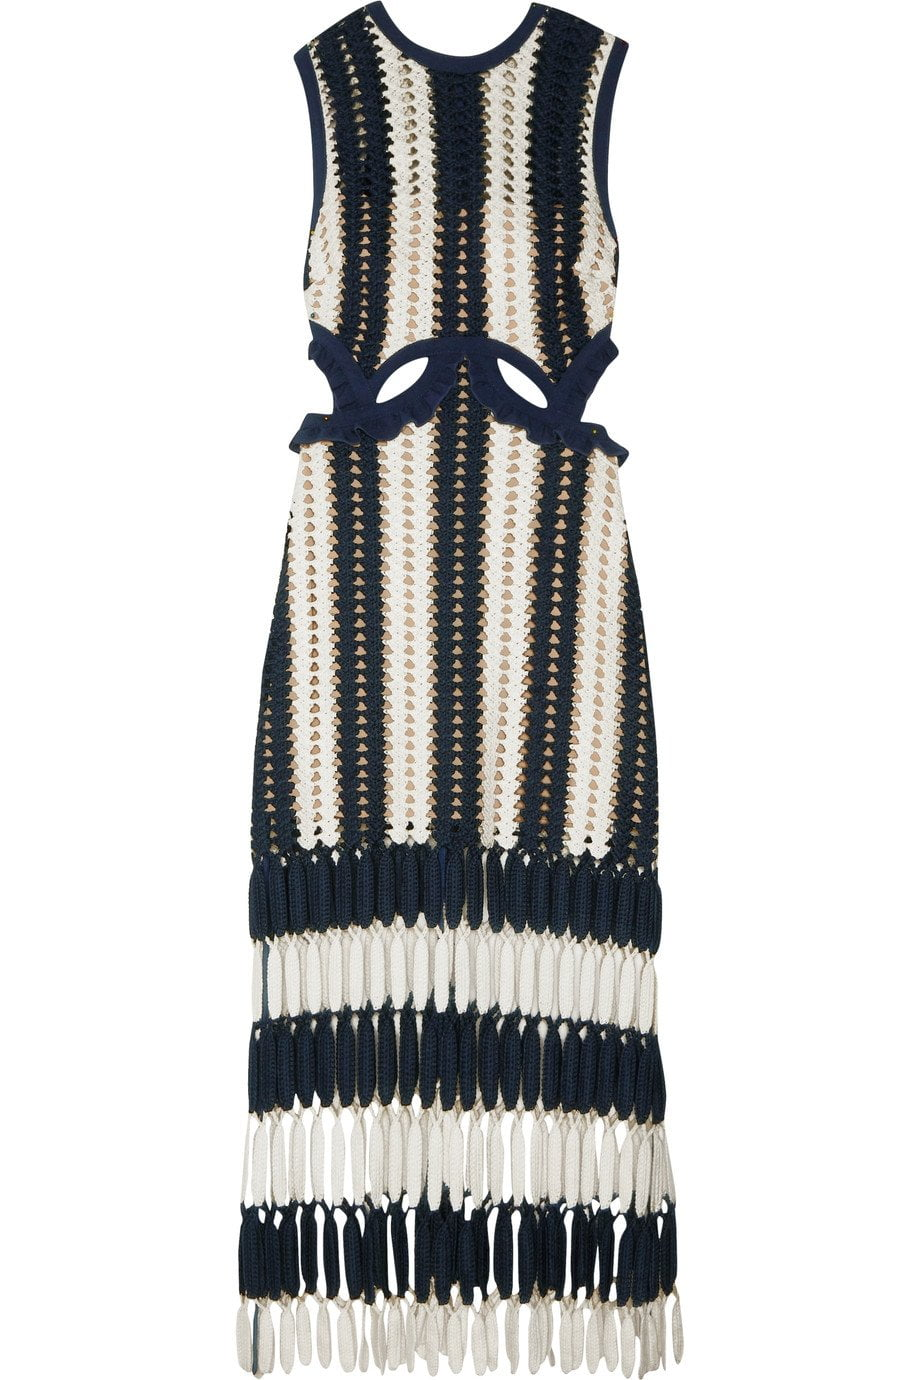 KNITTED TANK STRIPED DRESS-Dress-SheSimplyShops